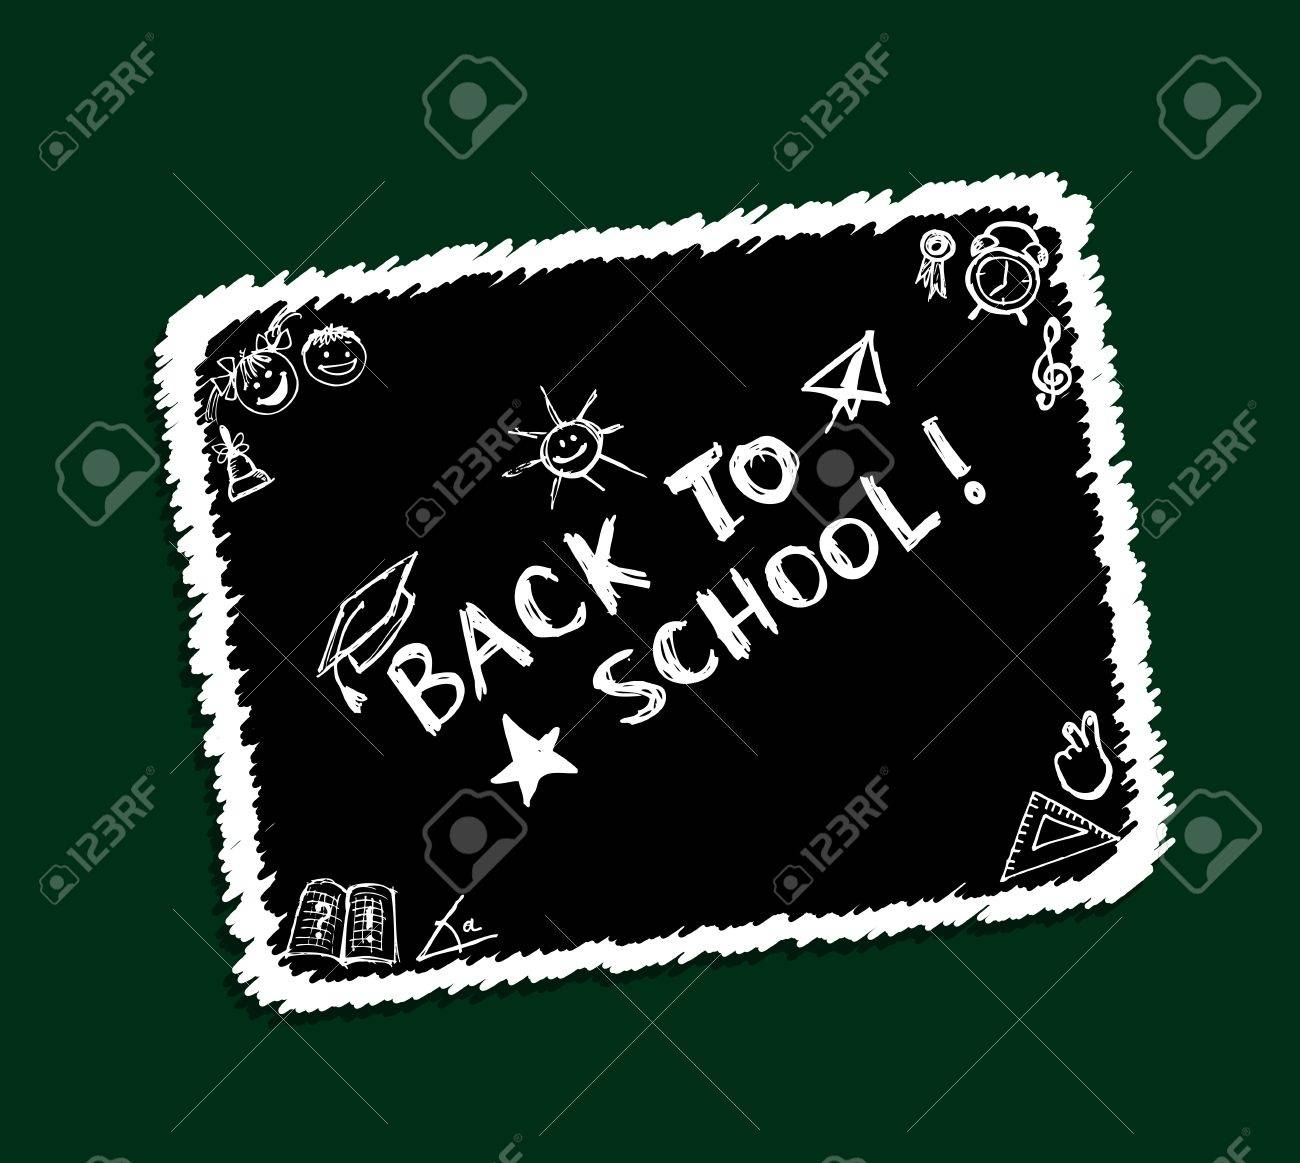 Back to school, sketch frame for your design Stock Vector - 10296971